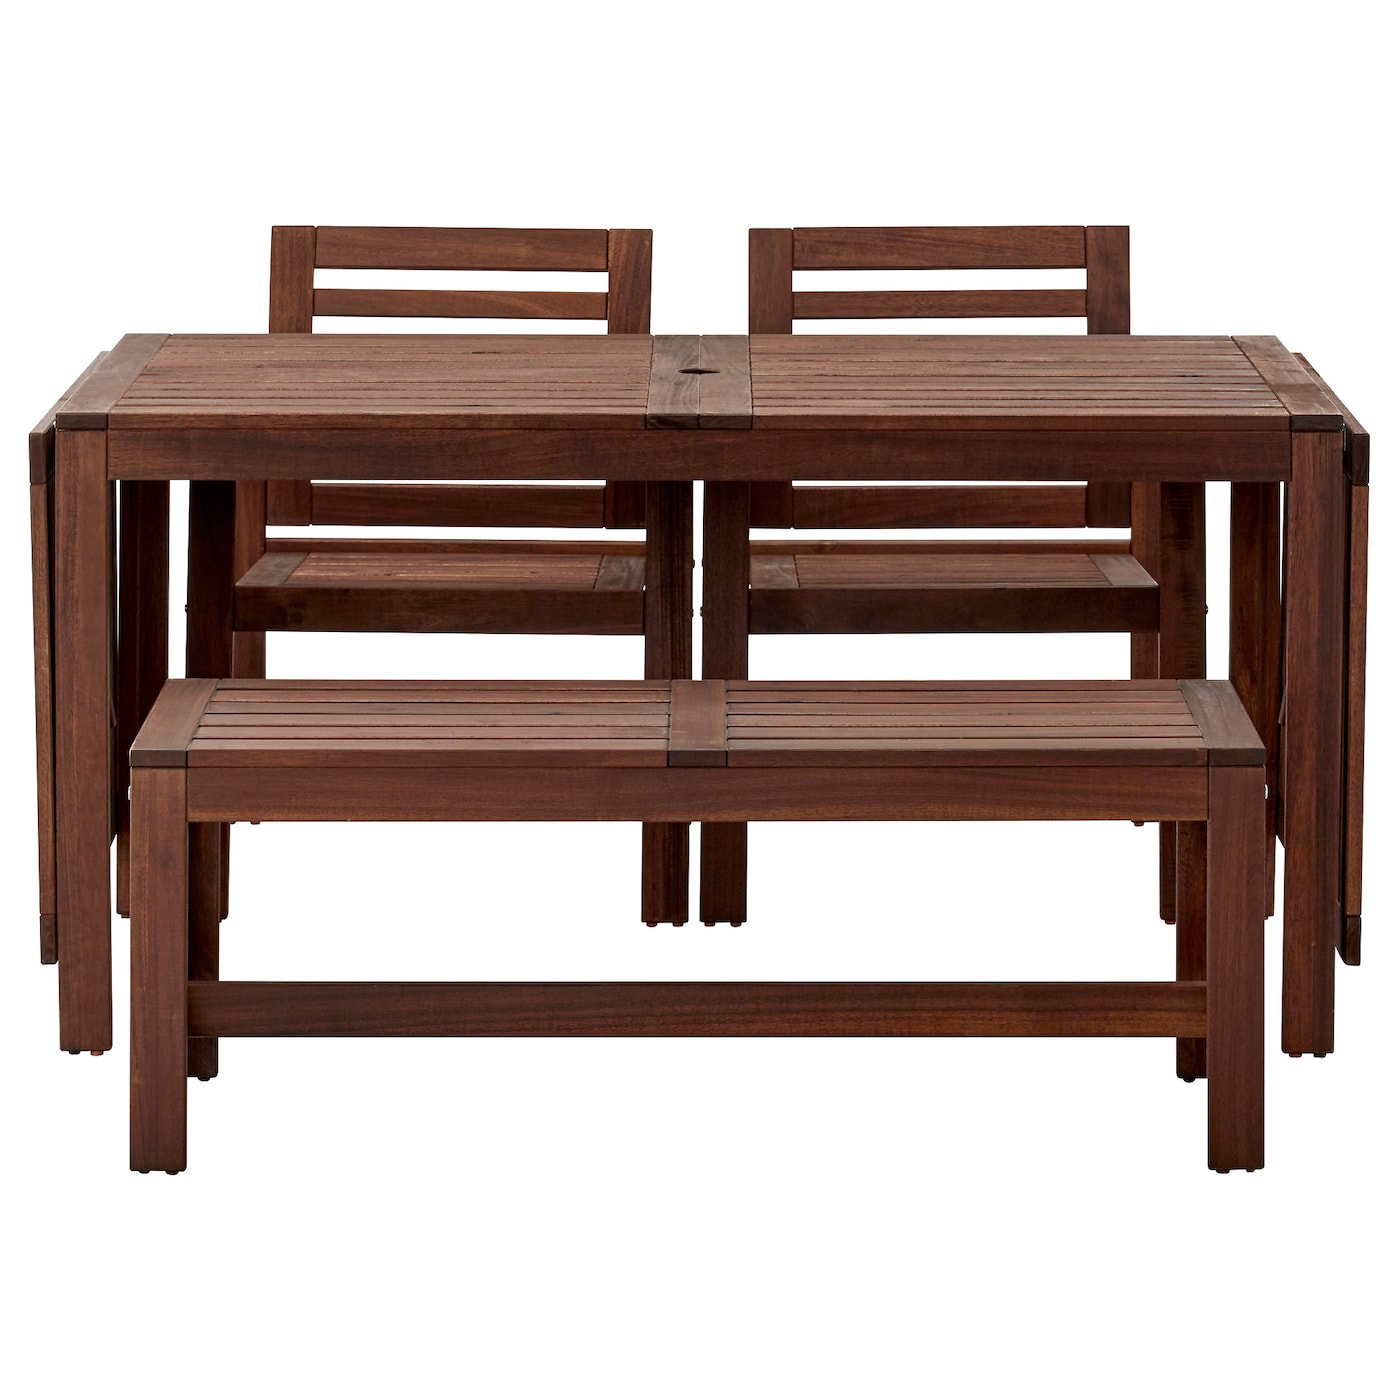 Garden tables chairs garden furniture sets ikea for Bench table set